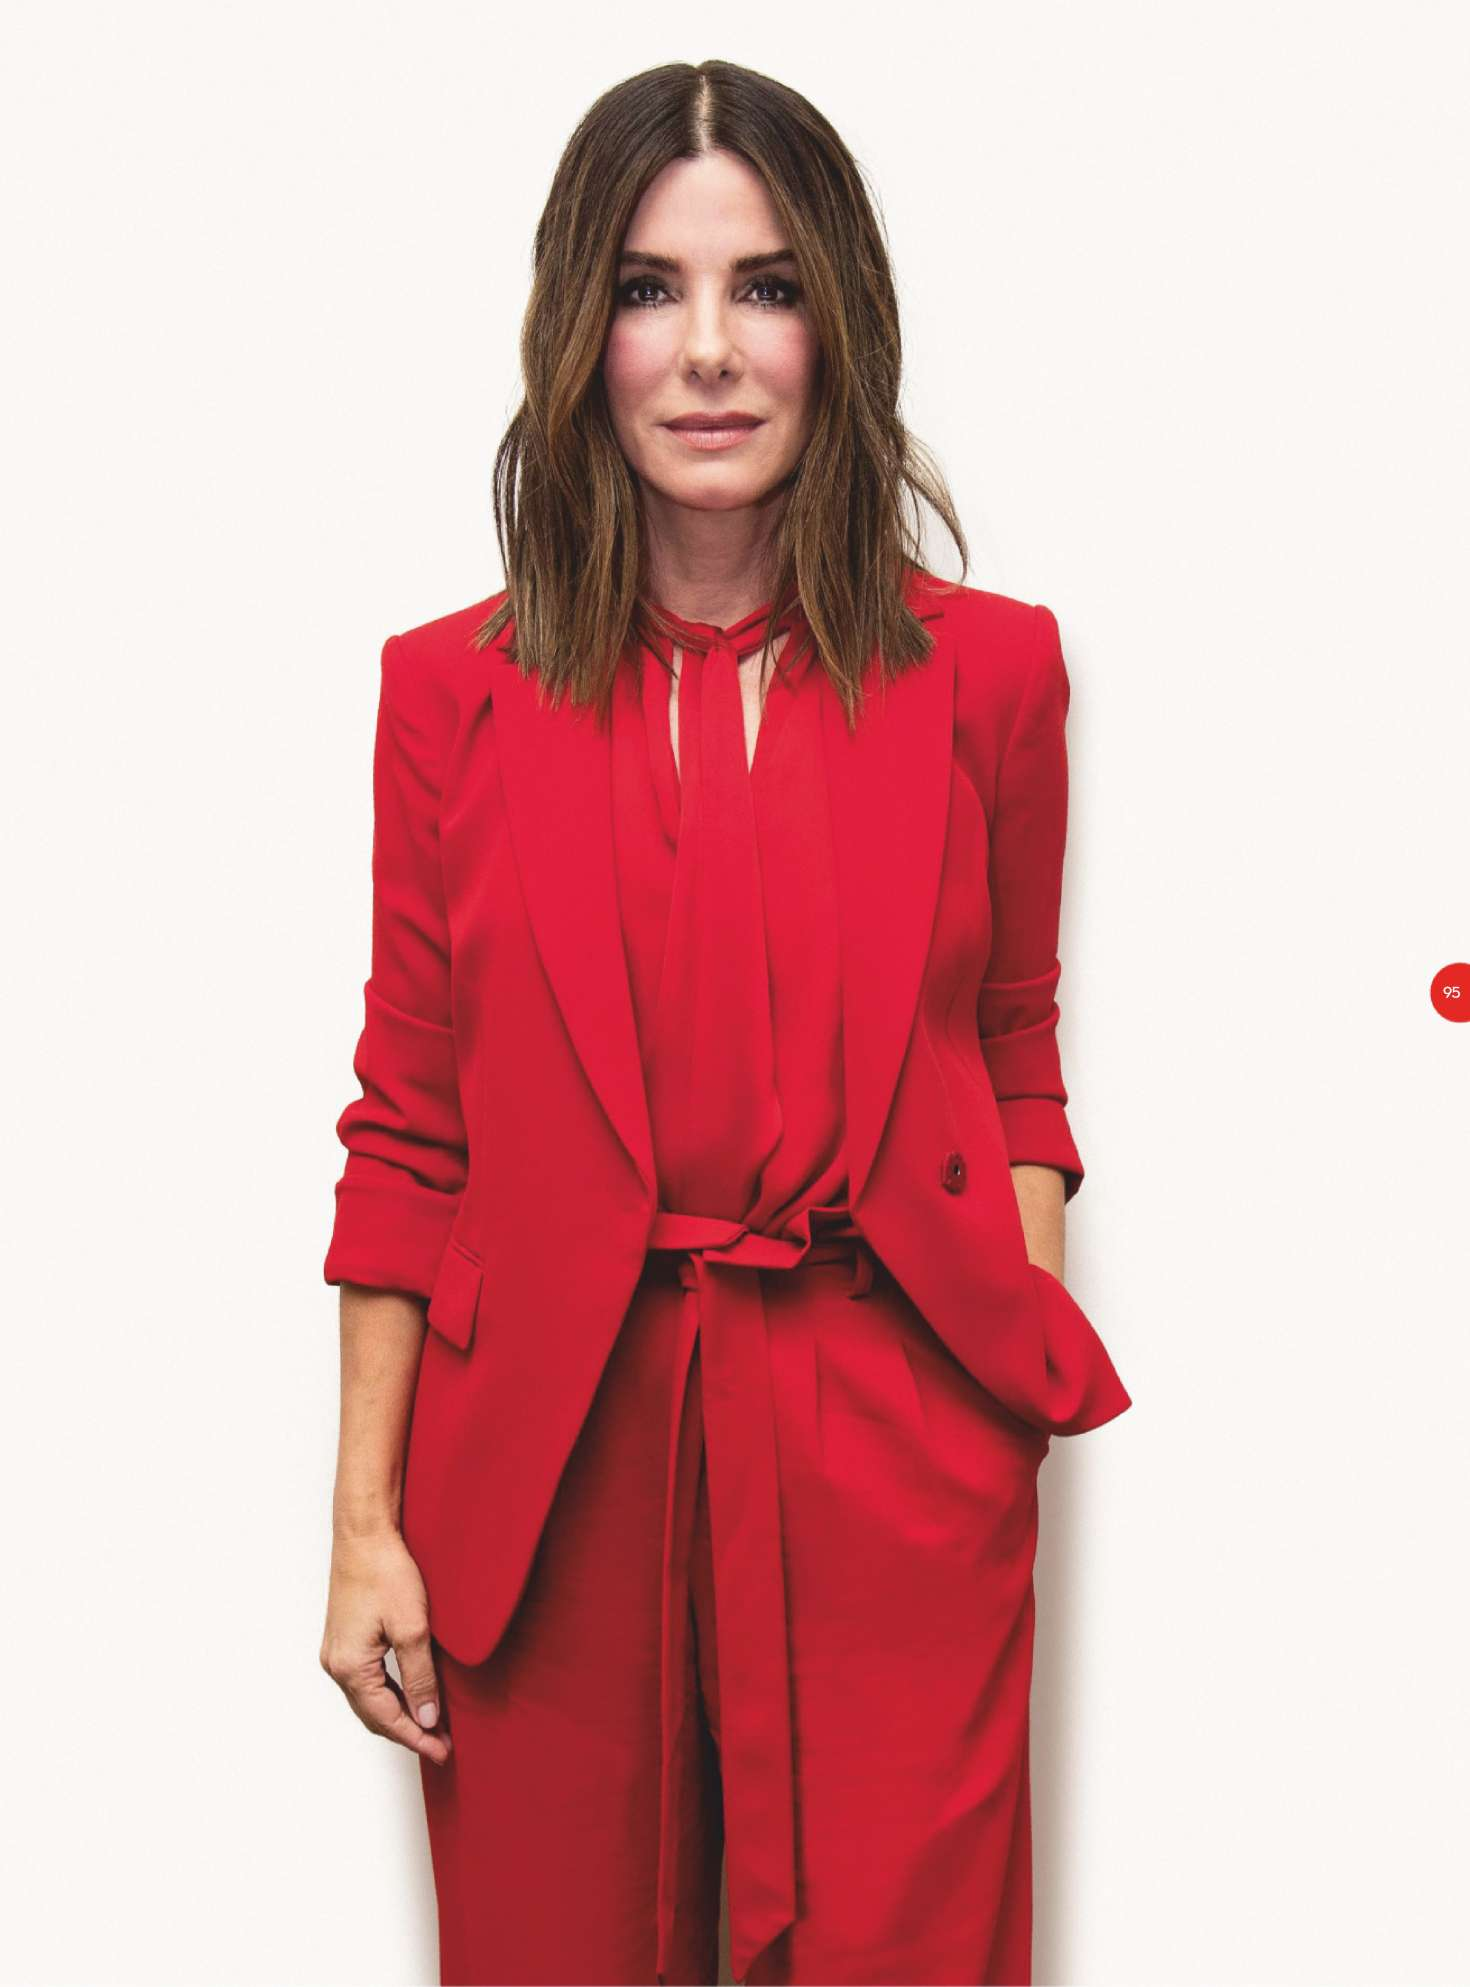 Sandra Bullock - Total Film Magazine (January 2019)